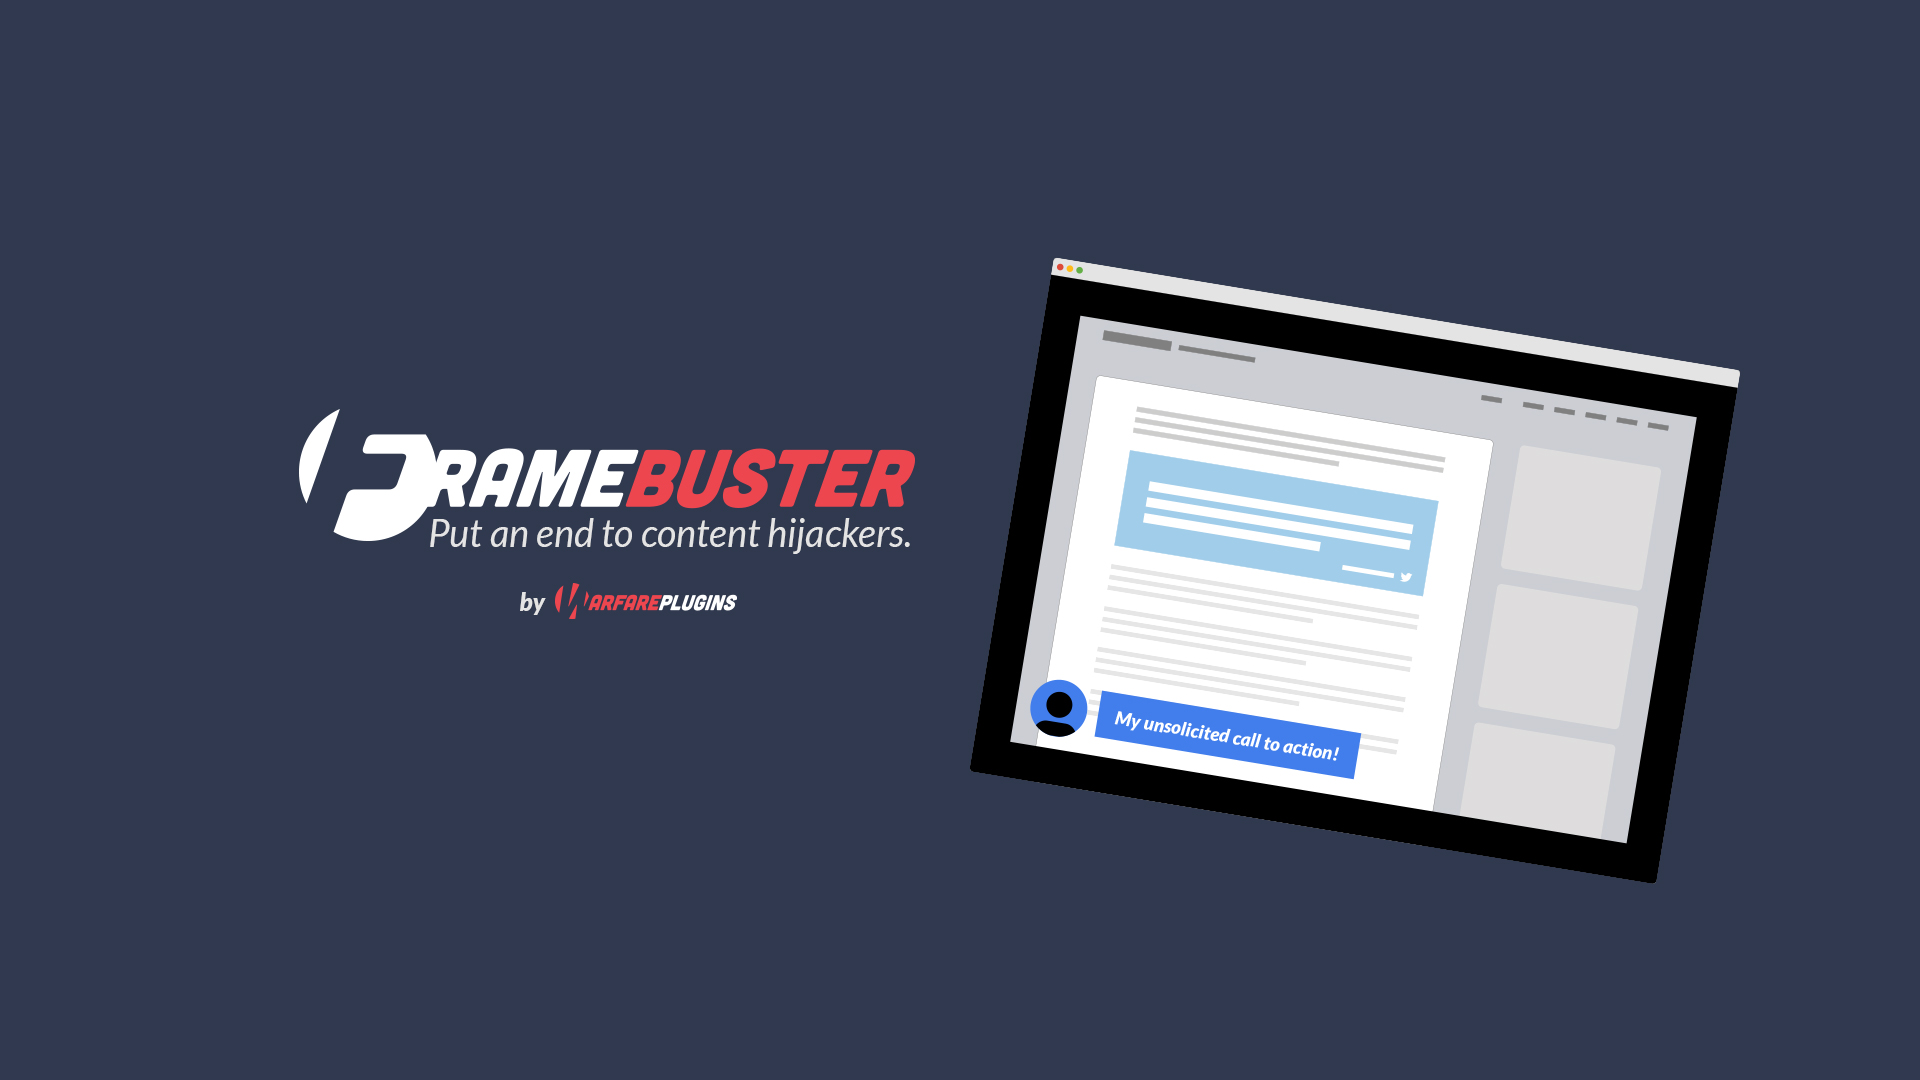 frame buster by warfare plugins